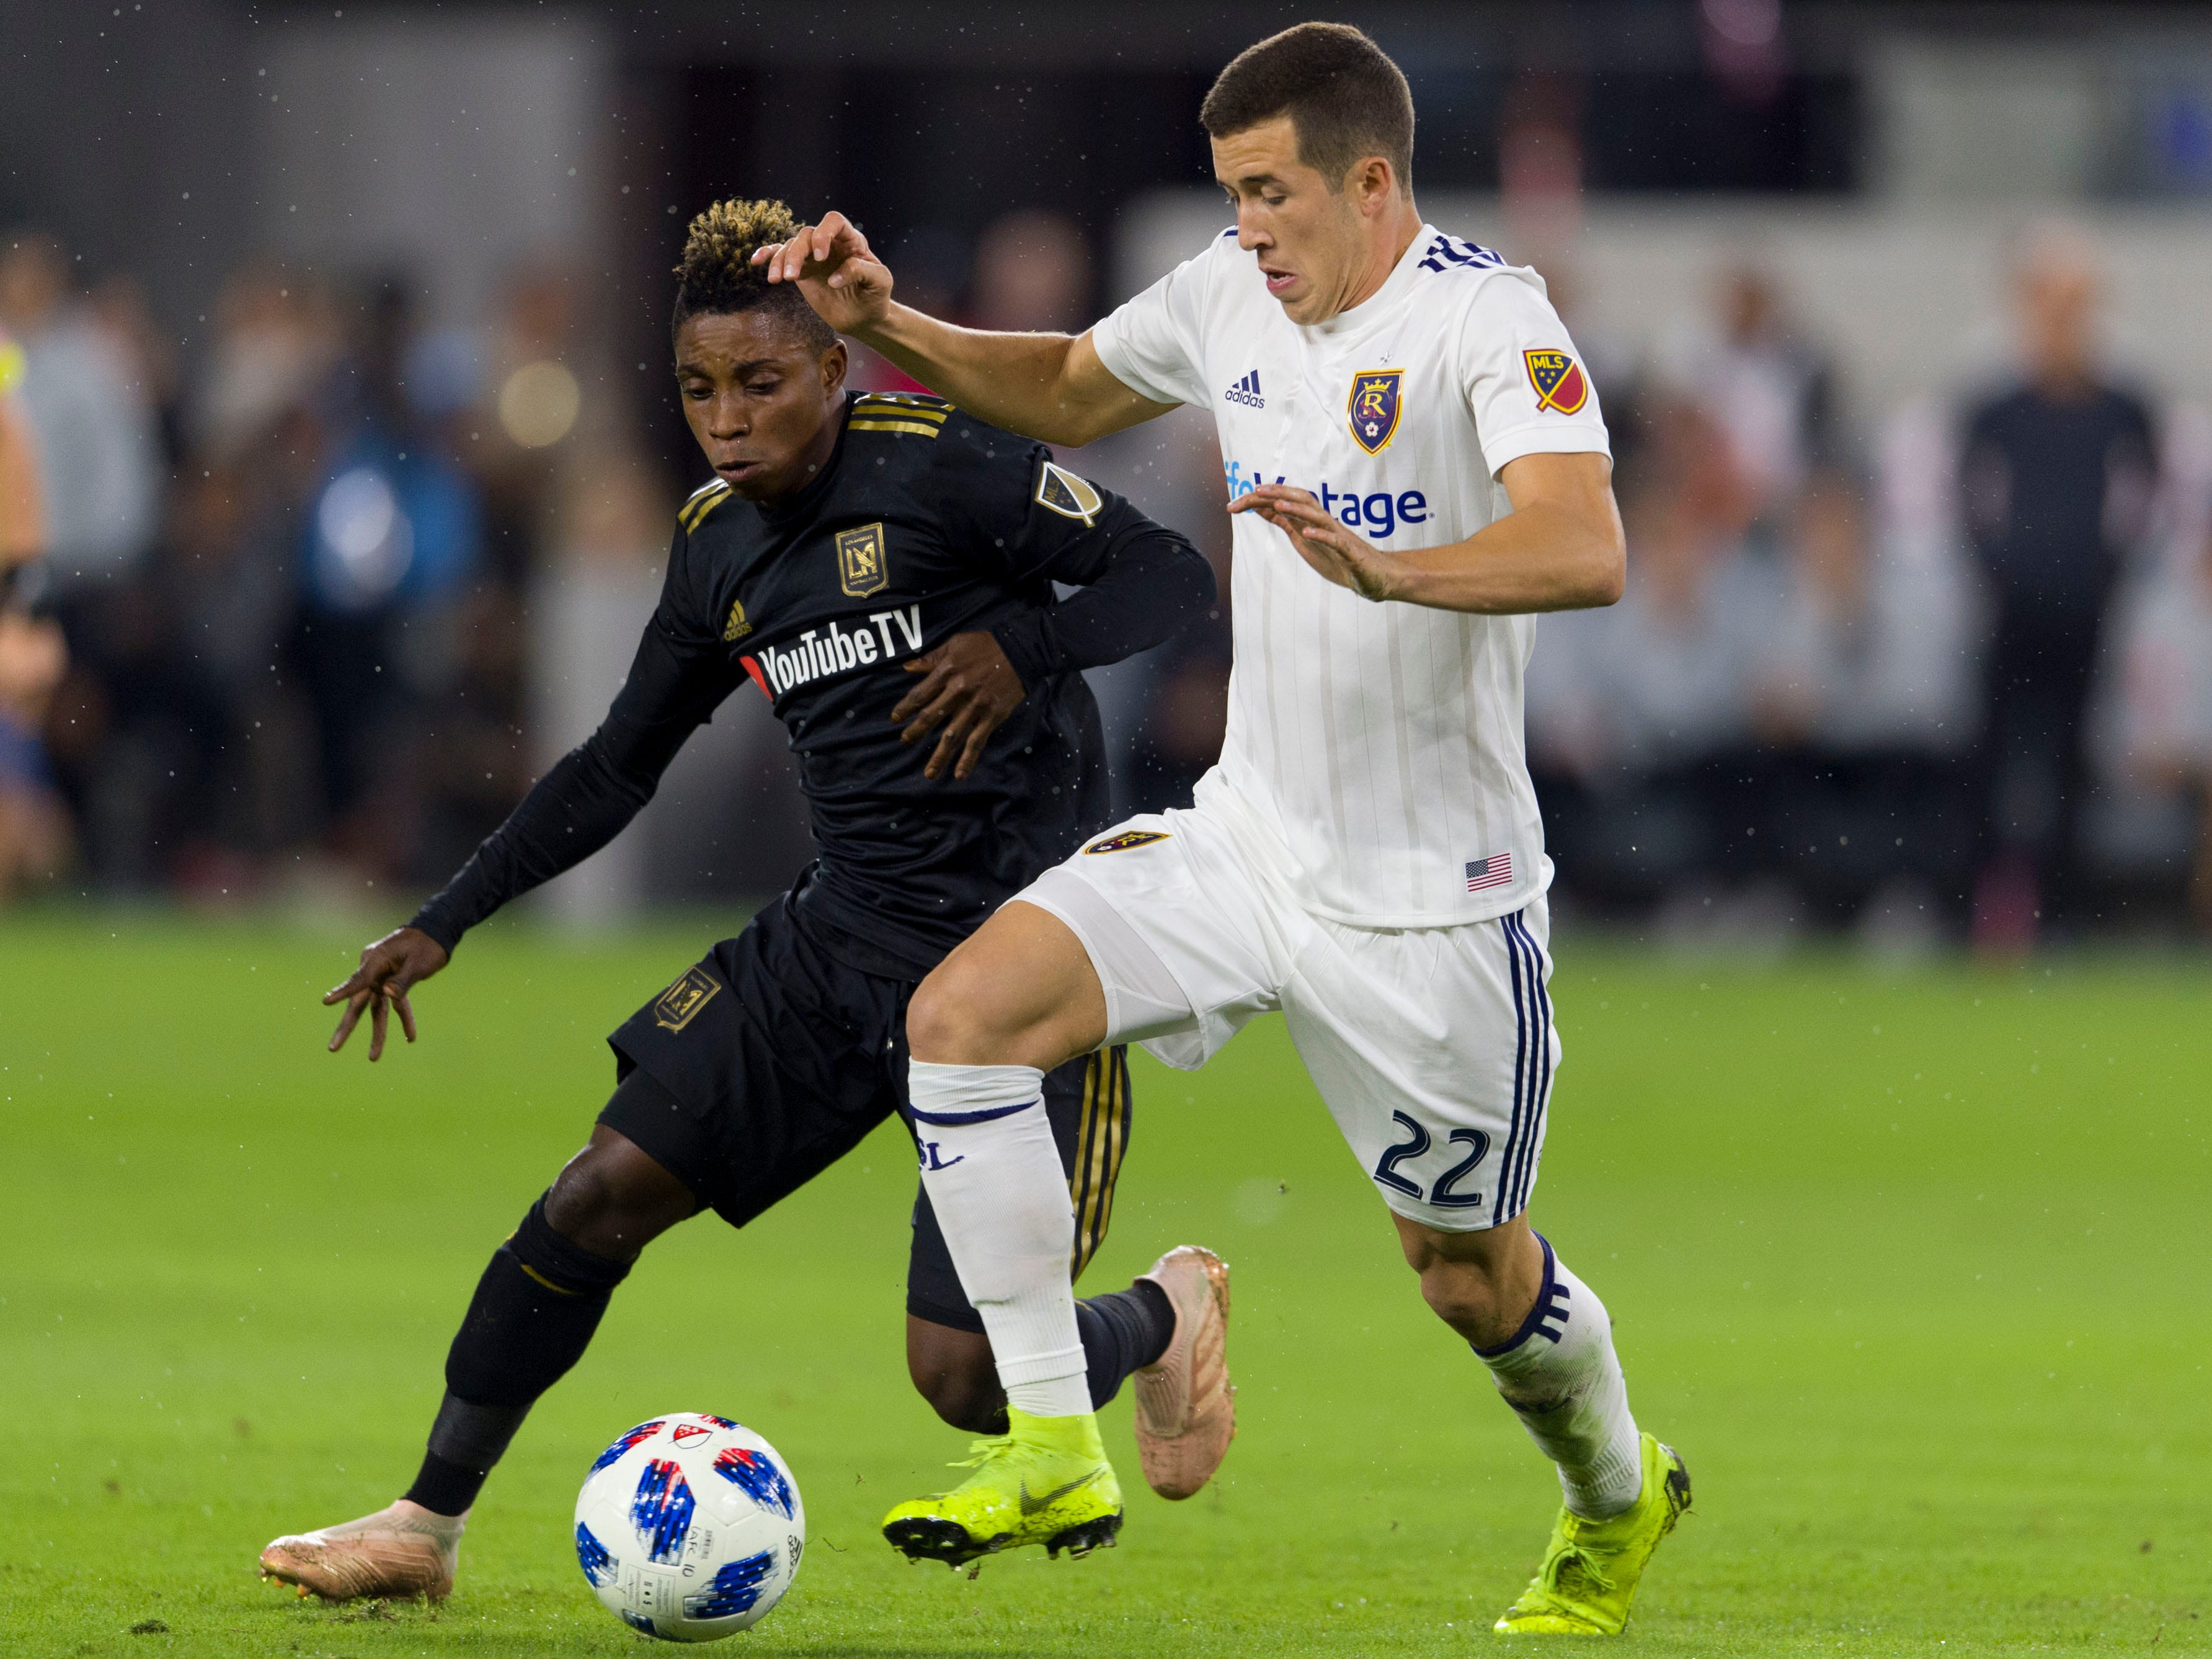 Los Angeles FC midfielder Latif Blessing and Real Salt Lake defender Aaron Herrera (22) battle for the ball during the first half at Banc of California Stadium.